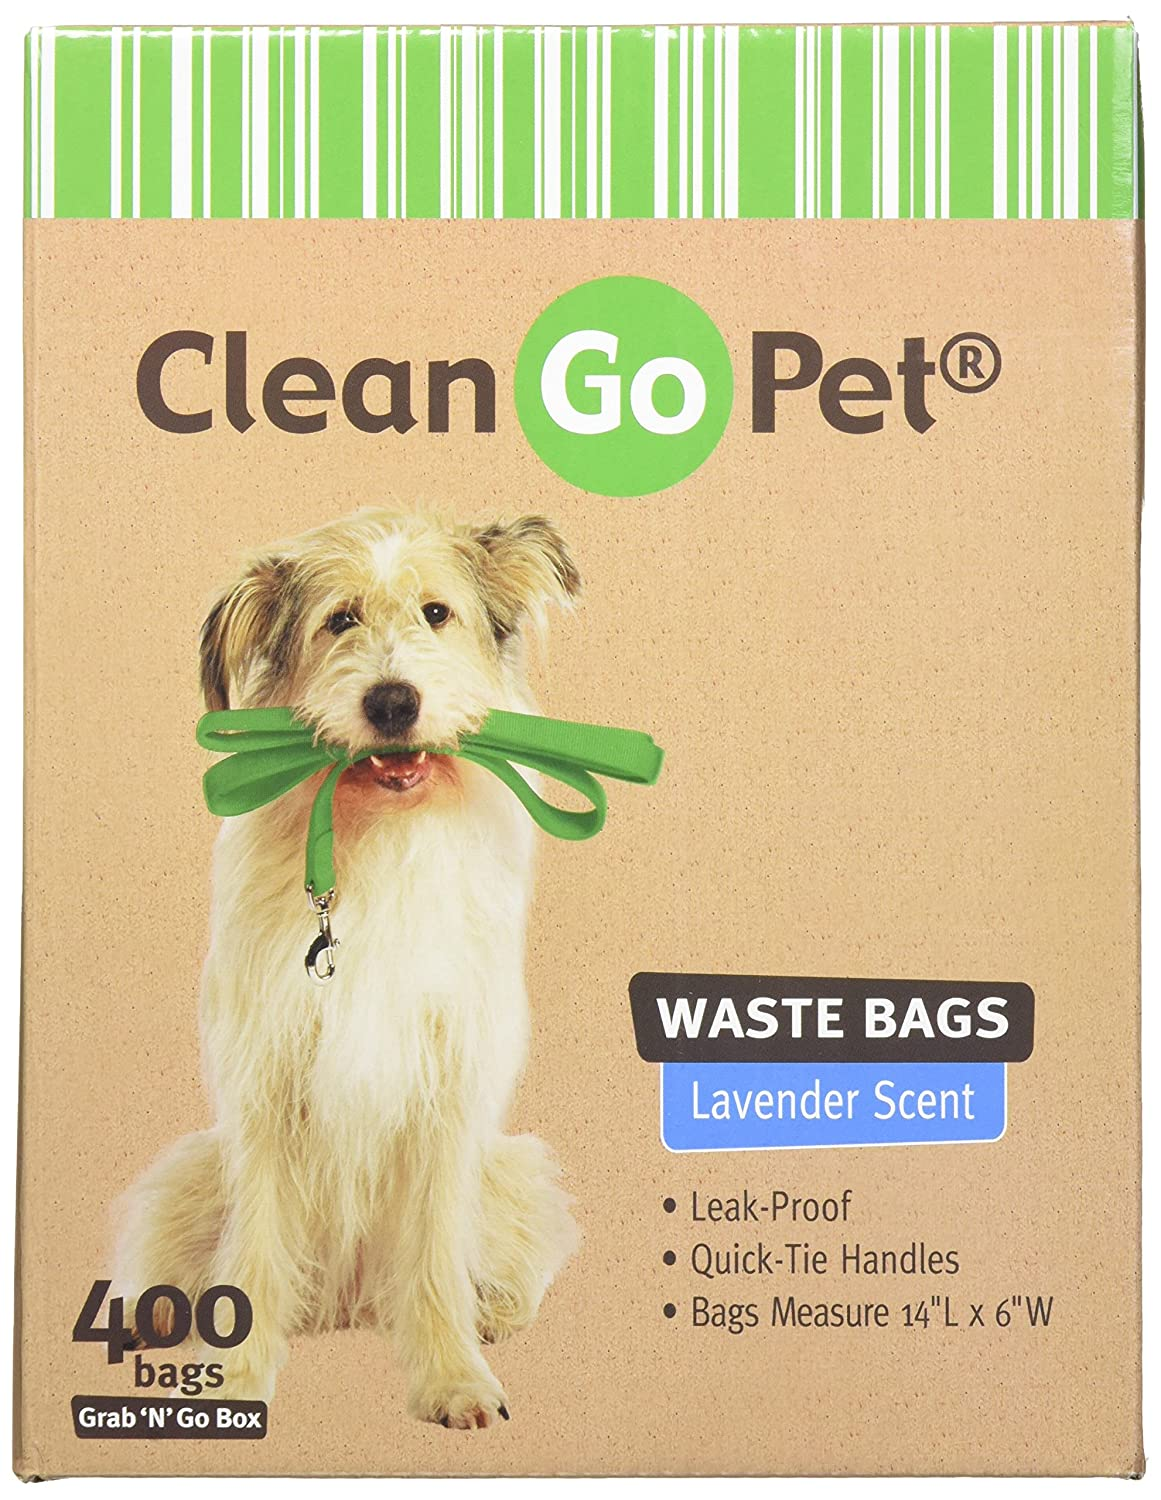 Clean Go Pet Lavender Scent Doggy Waste Bags 400-Count Quick-Tie Handles Poop Bags